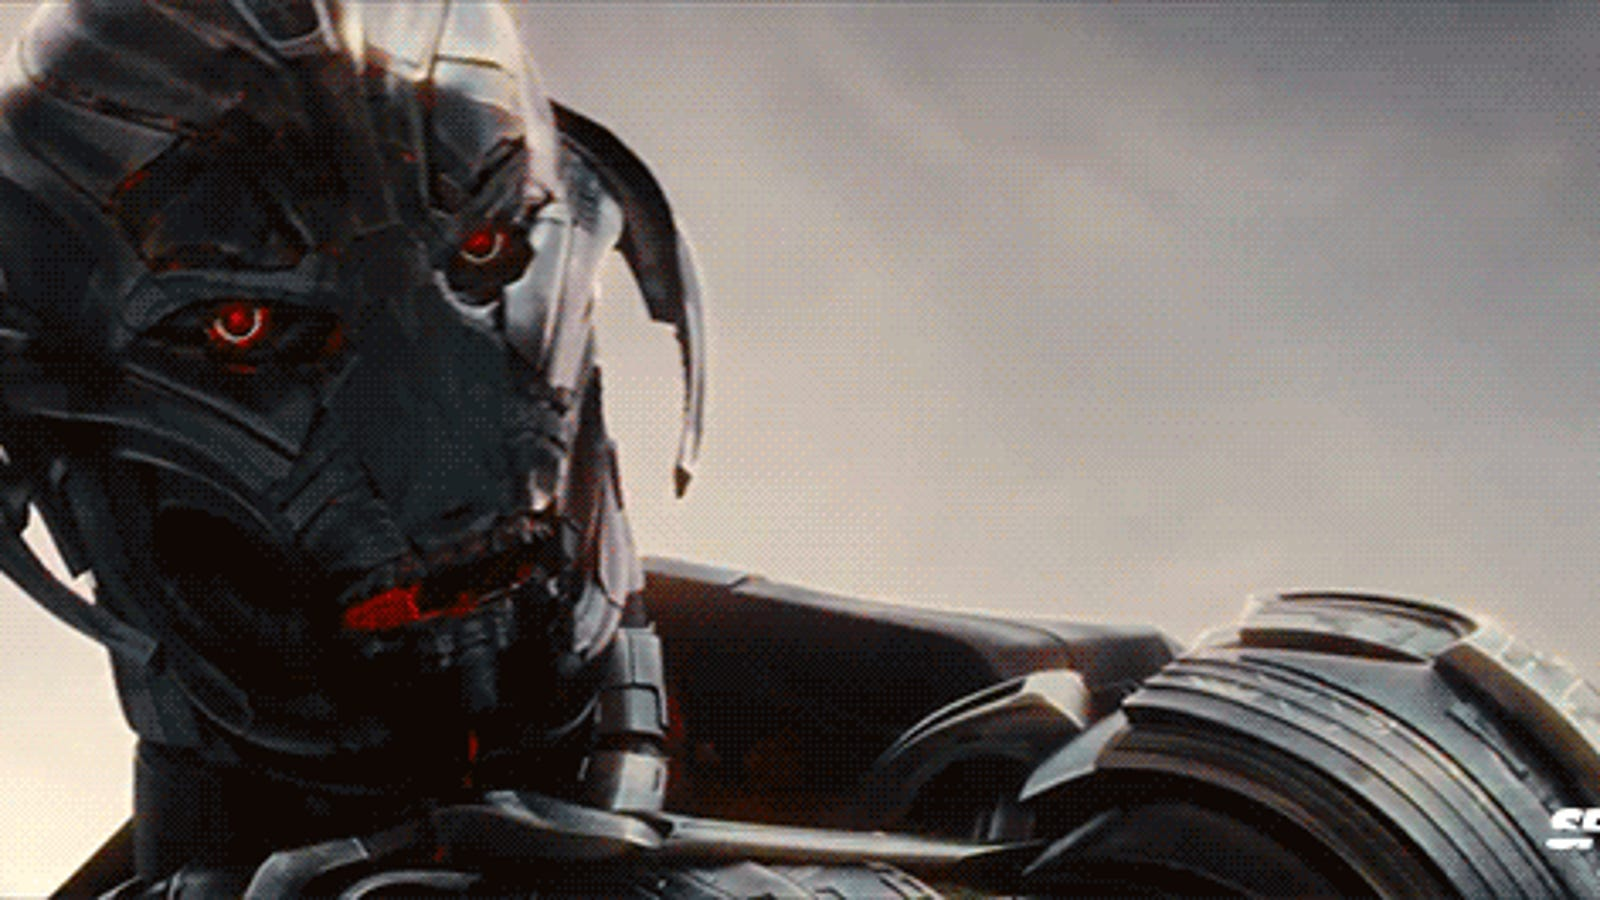 This is first trailer for Avengers 2: Age of Ultron and it looks amazing